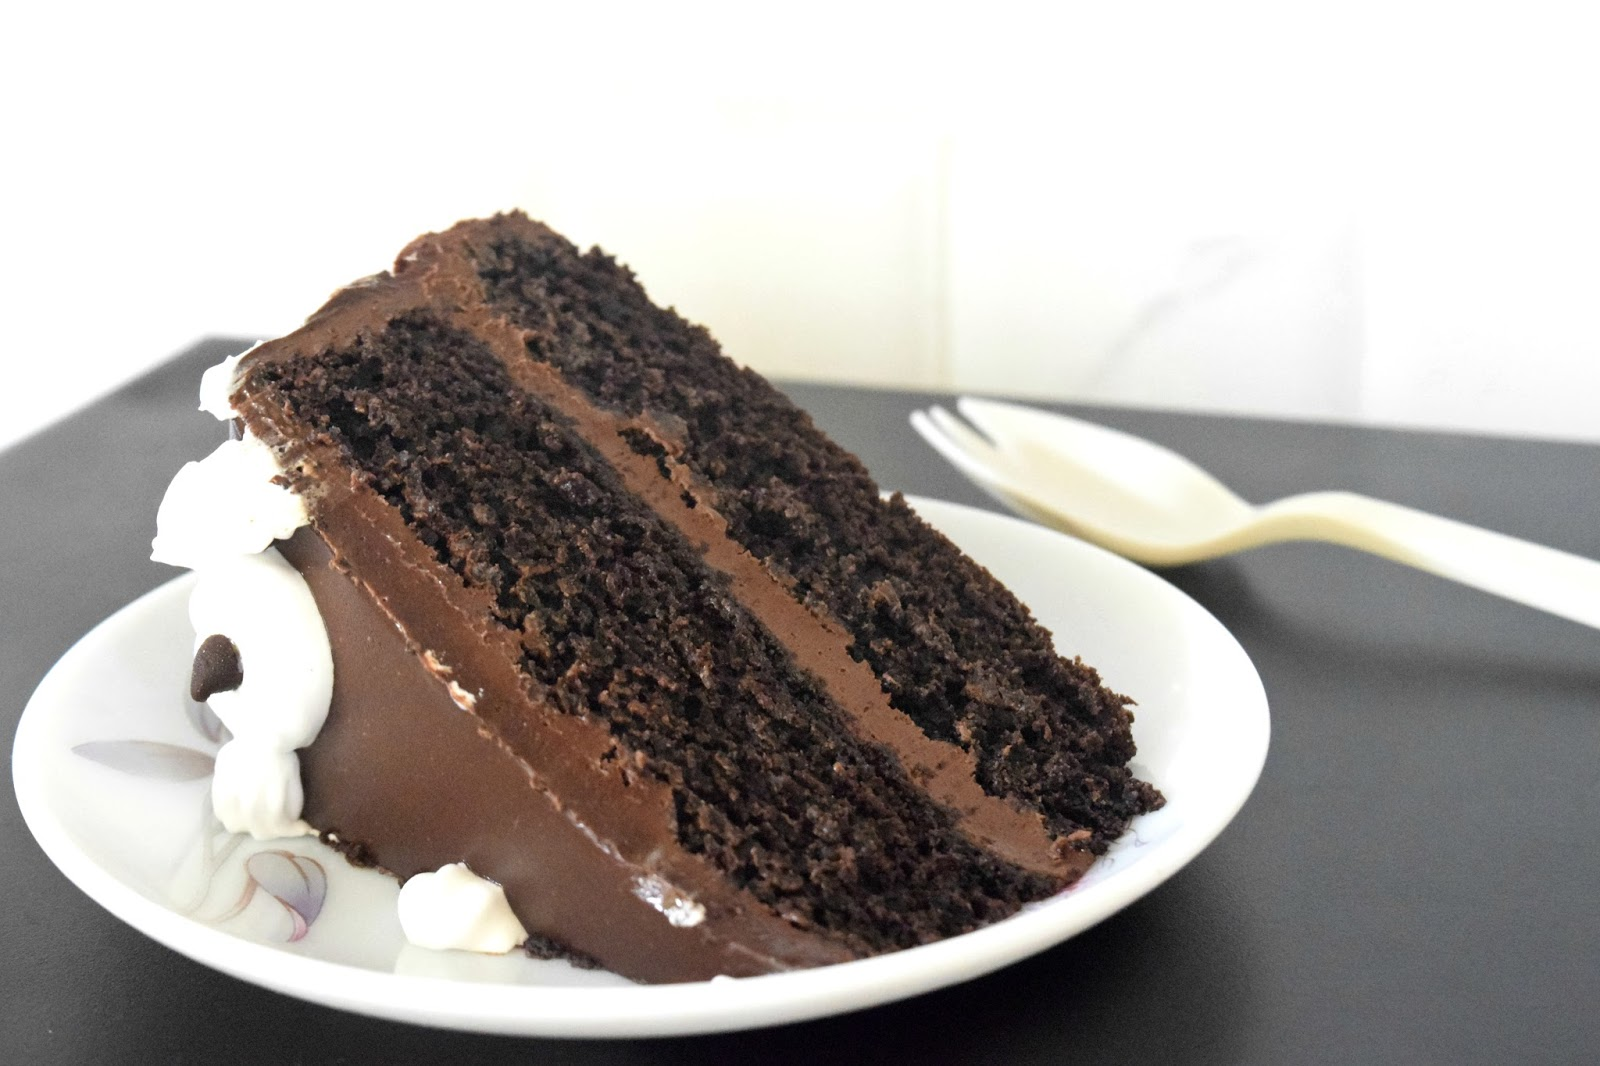 How To Make Chocolate Ganache Filling For Cake